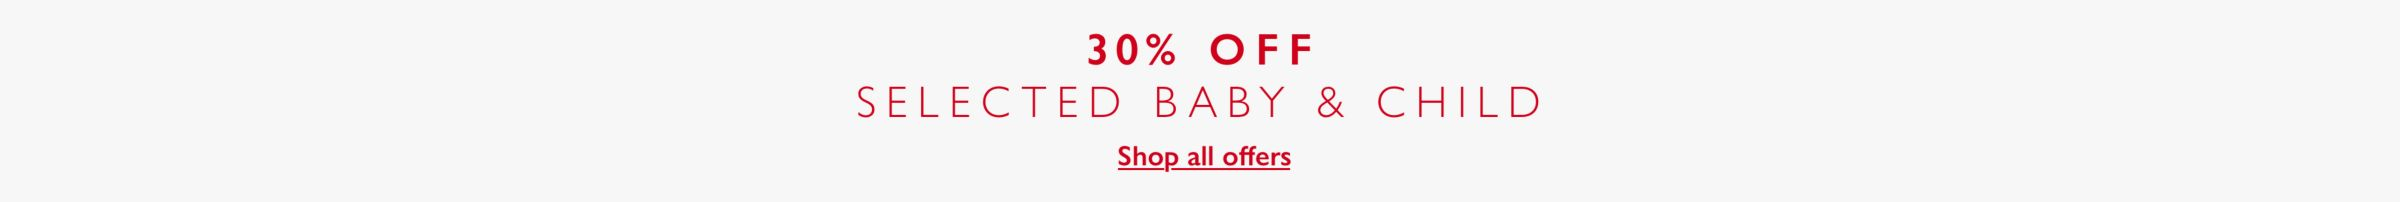 30 percent off selected baby and child